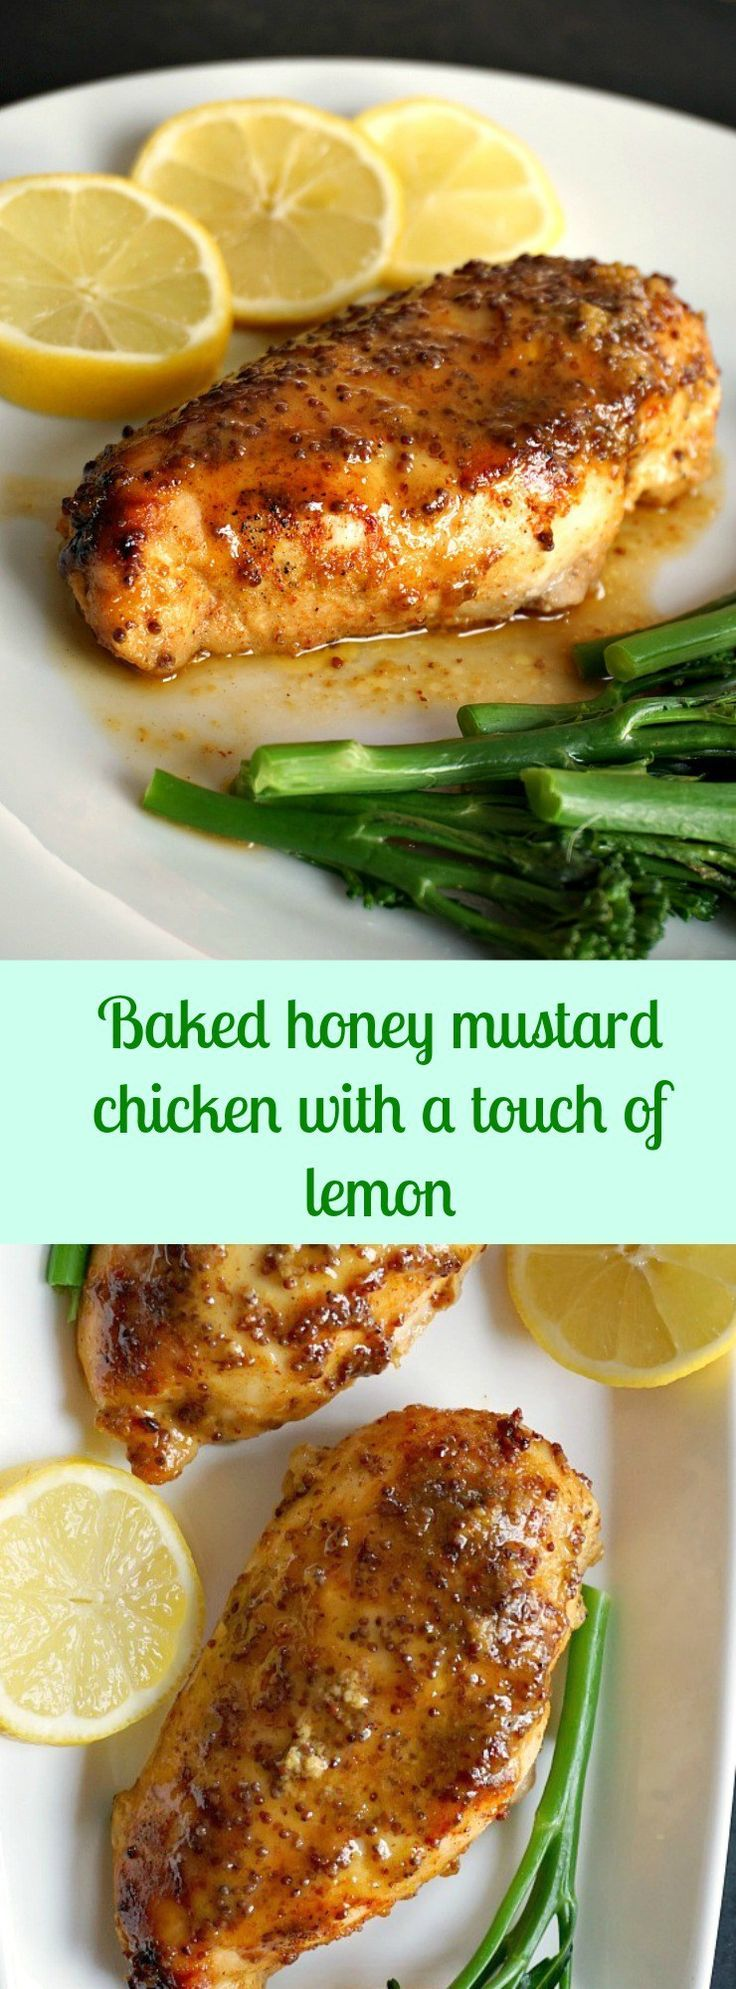 baked honey mustard chicken with a touch of lemon main meals